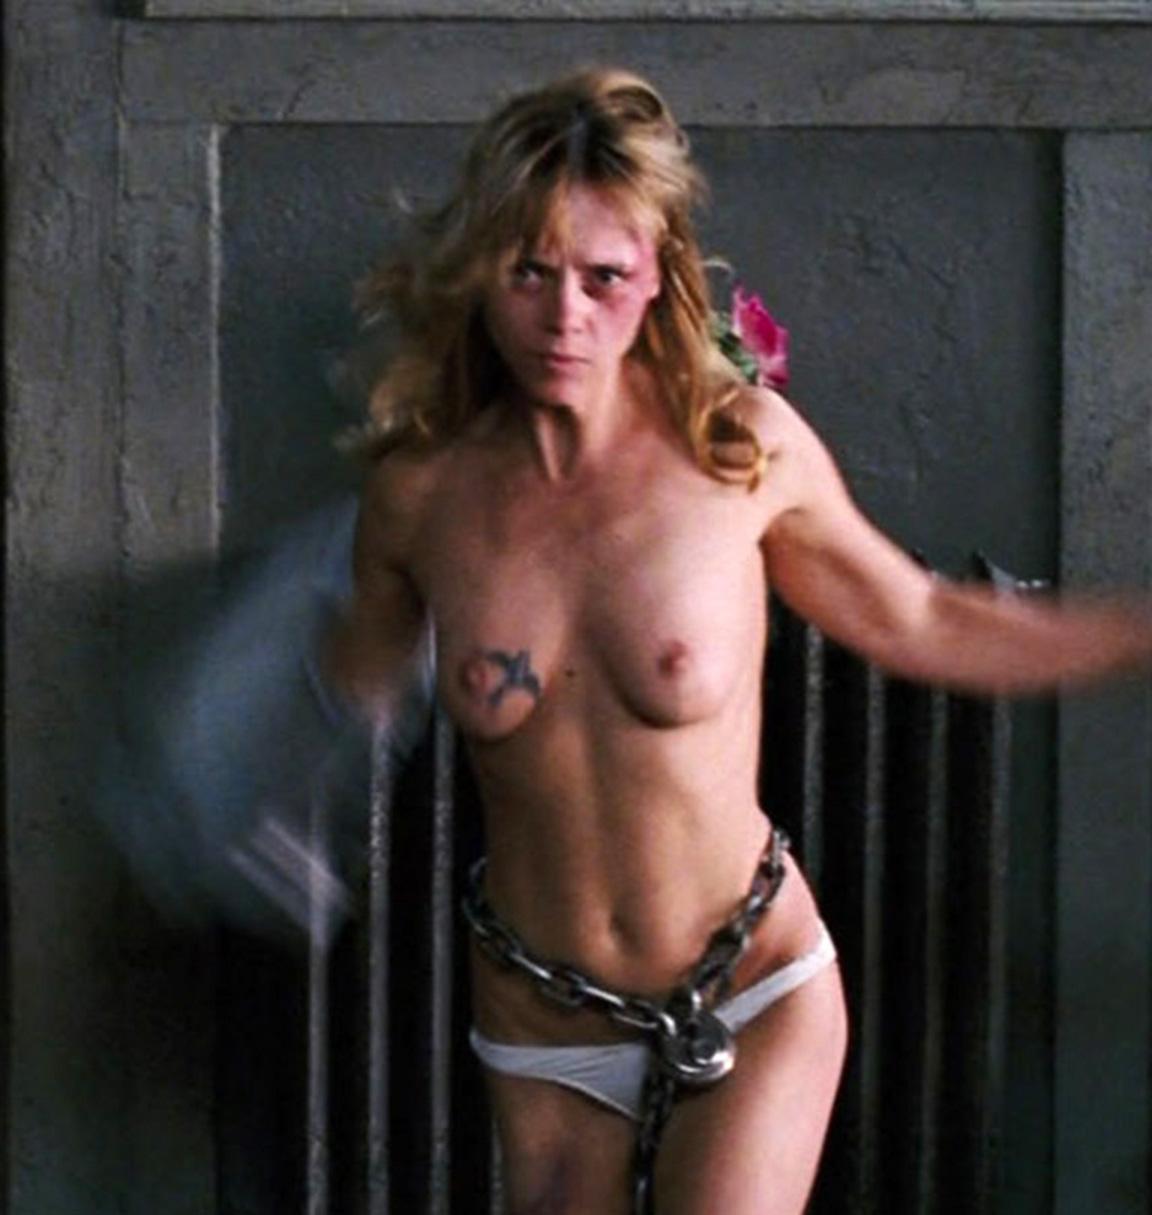 christina-ricci-sex-movies-domination-her-head